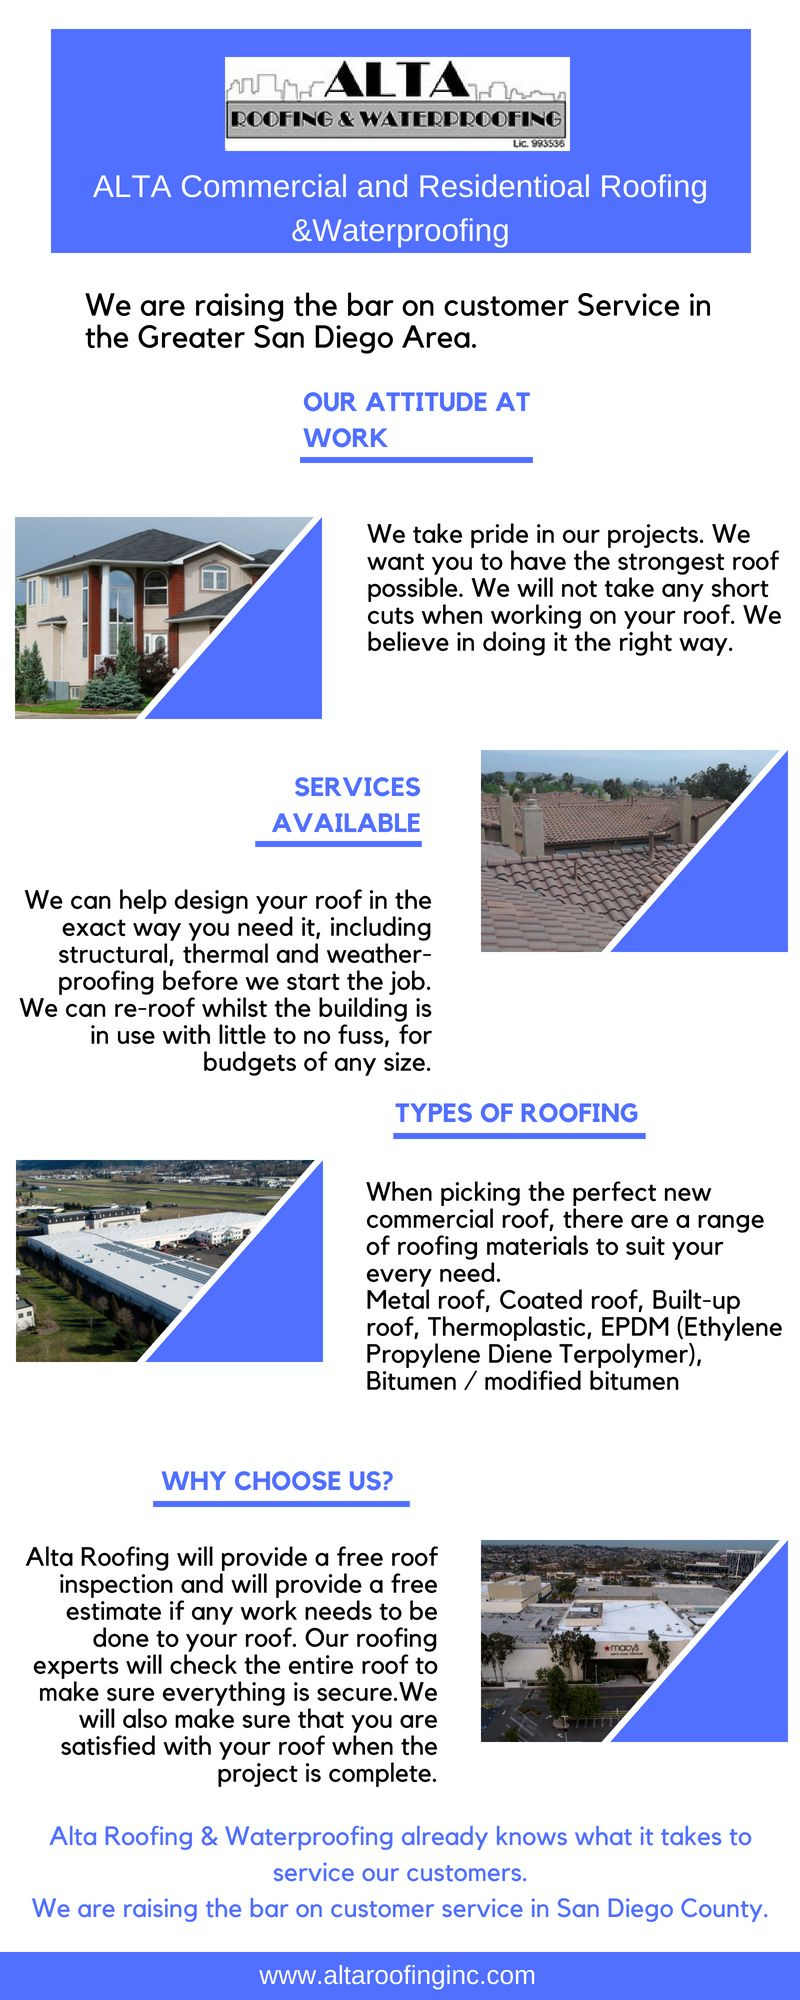 Alta Roofing Waterproofing Residential And Commercial San Diego Roofing Commercial Roofing Residential